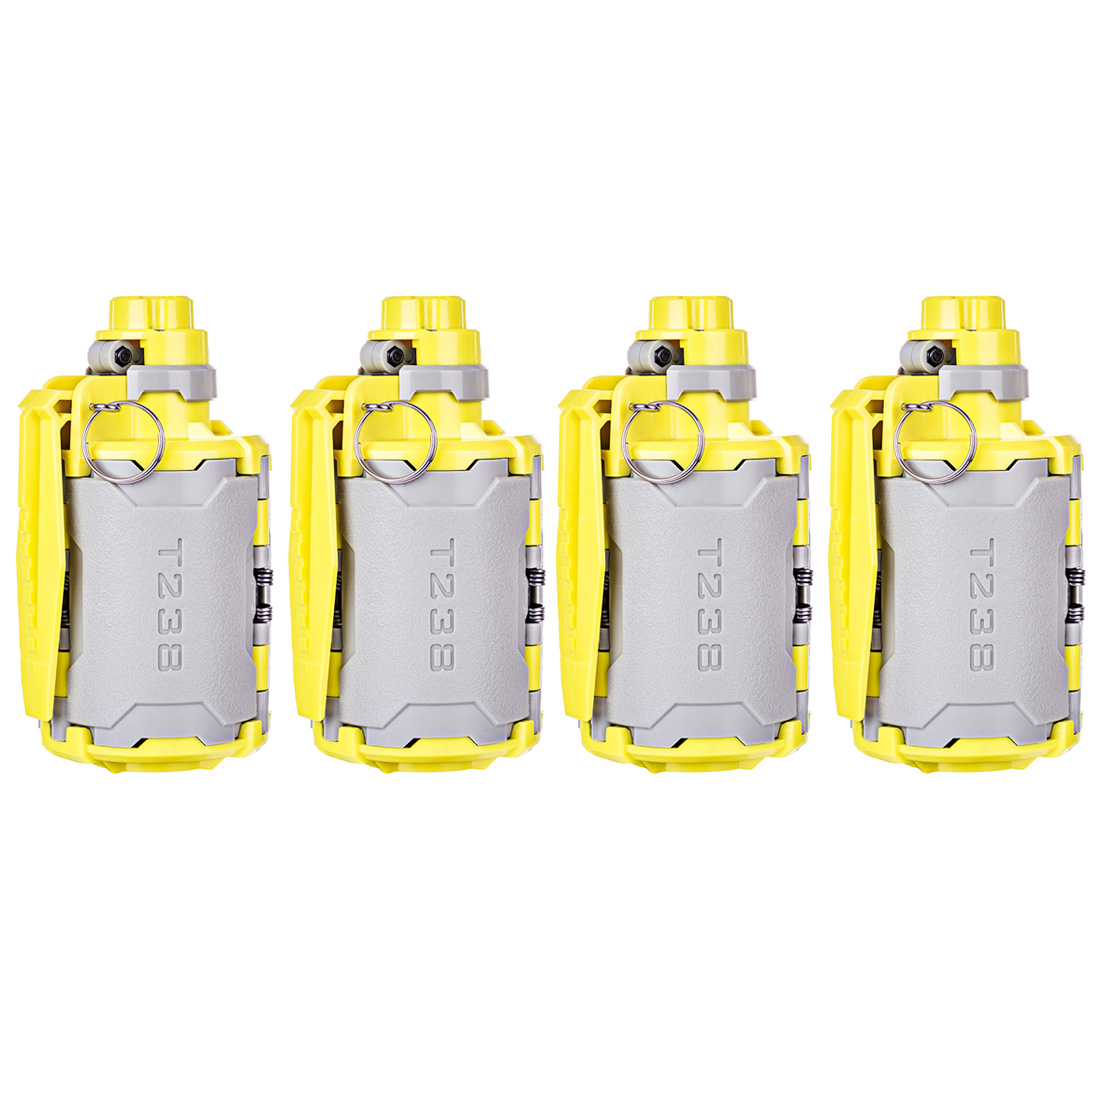 4 pcs T238 V2 Large Ungrad Capacity Bomb Tactical Toy with Time delayed Function for Nerf